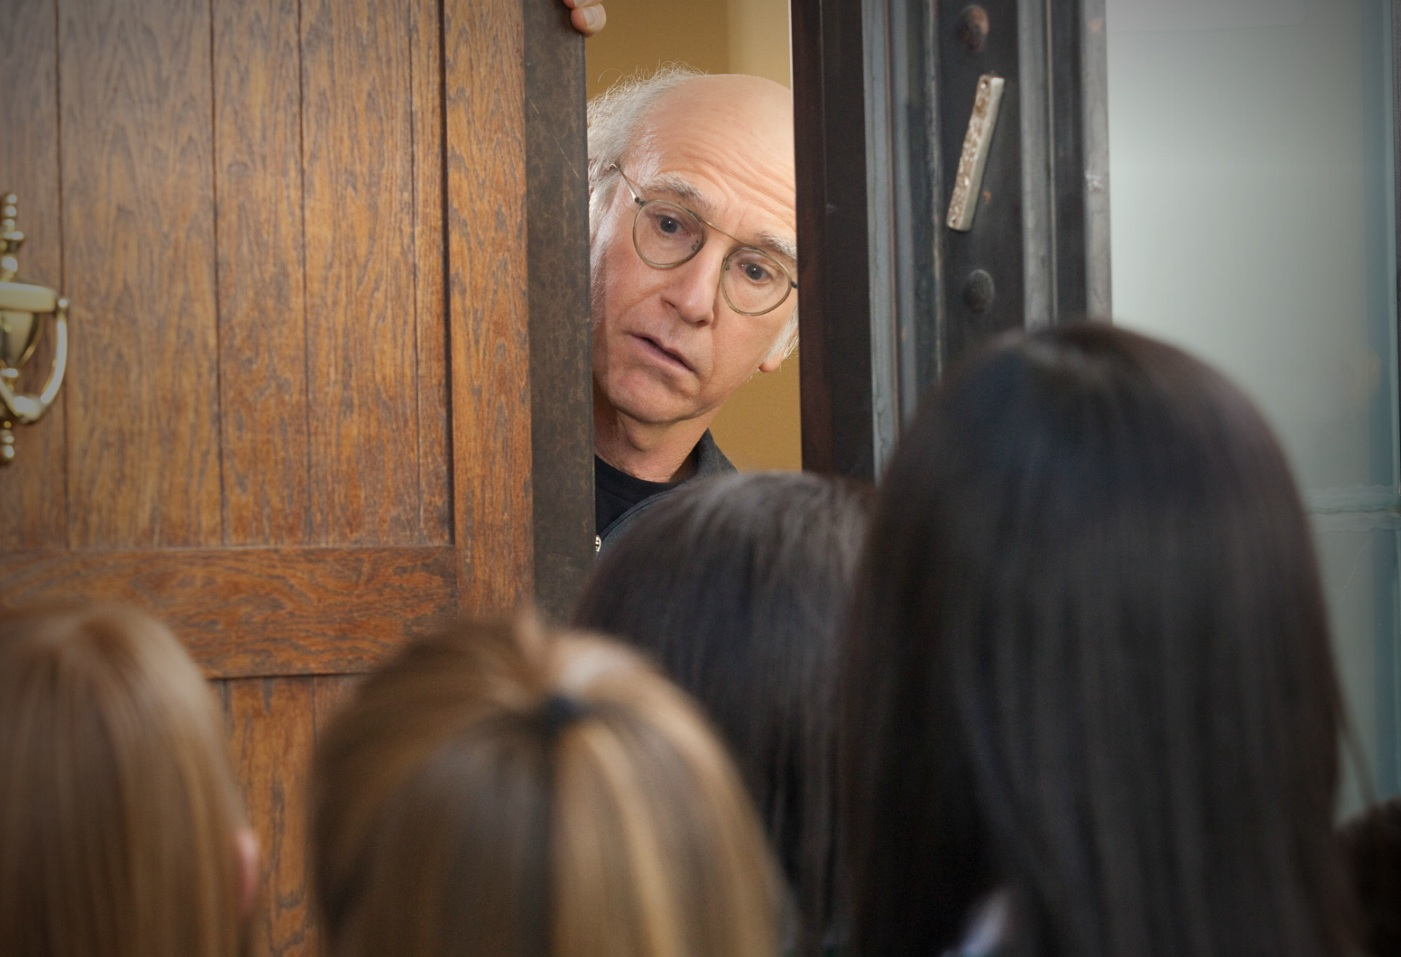 Curb your Enthusiasm wallpaper 5